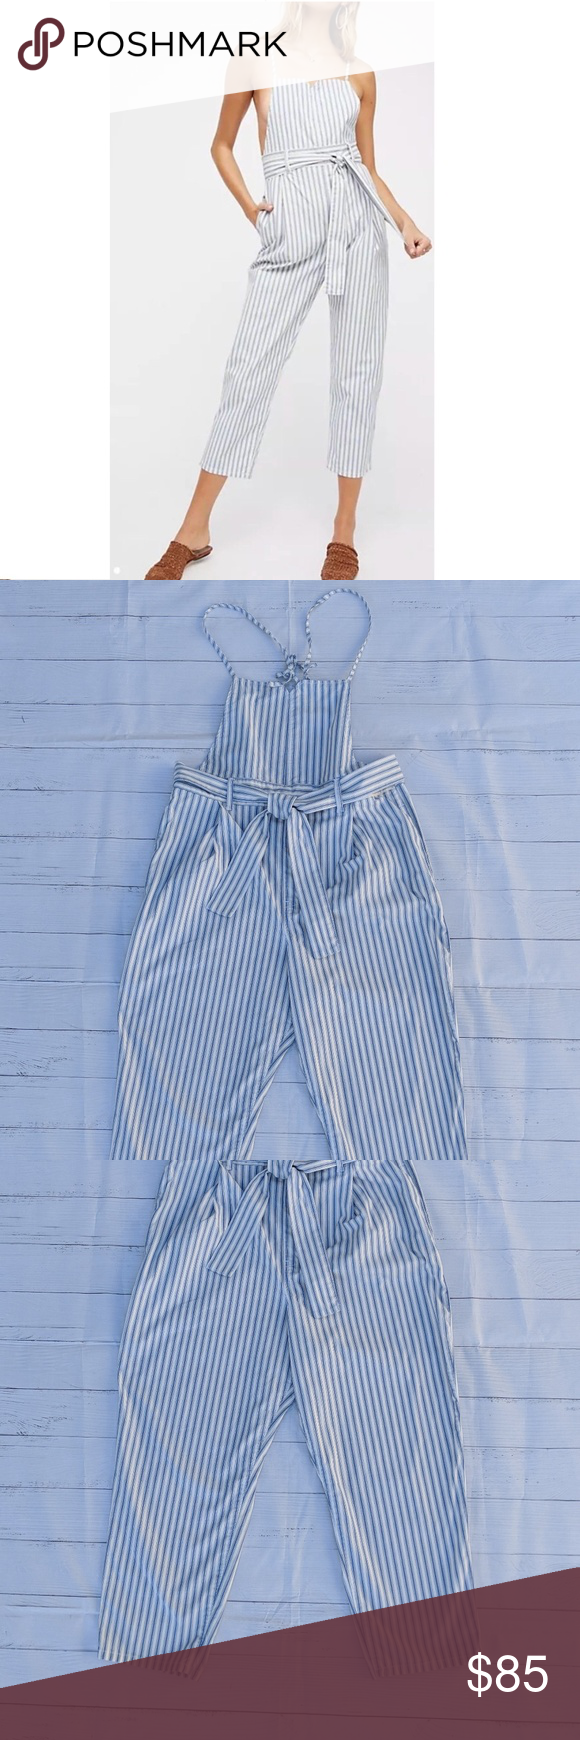 1ac69c7b927f Free People One Piece Striped Jumpsuit Overalls L Free People Isabelle  Pegged One Piece Striped Jumpsuit Large L Overalls Sz L Approximate  measurements  ...